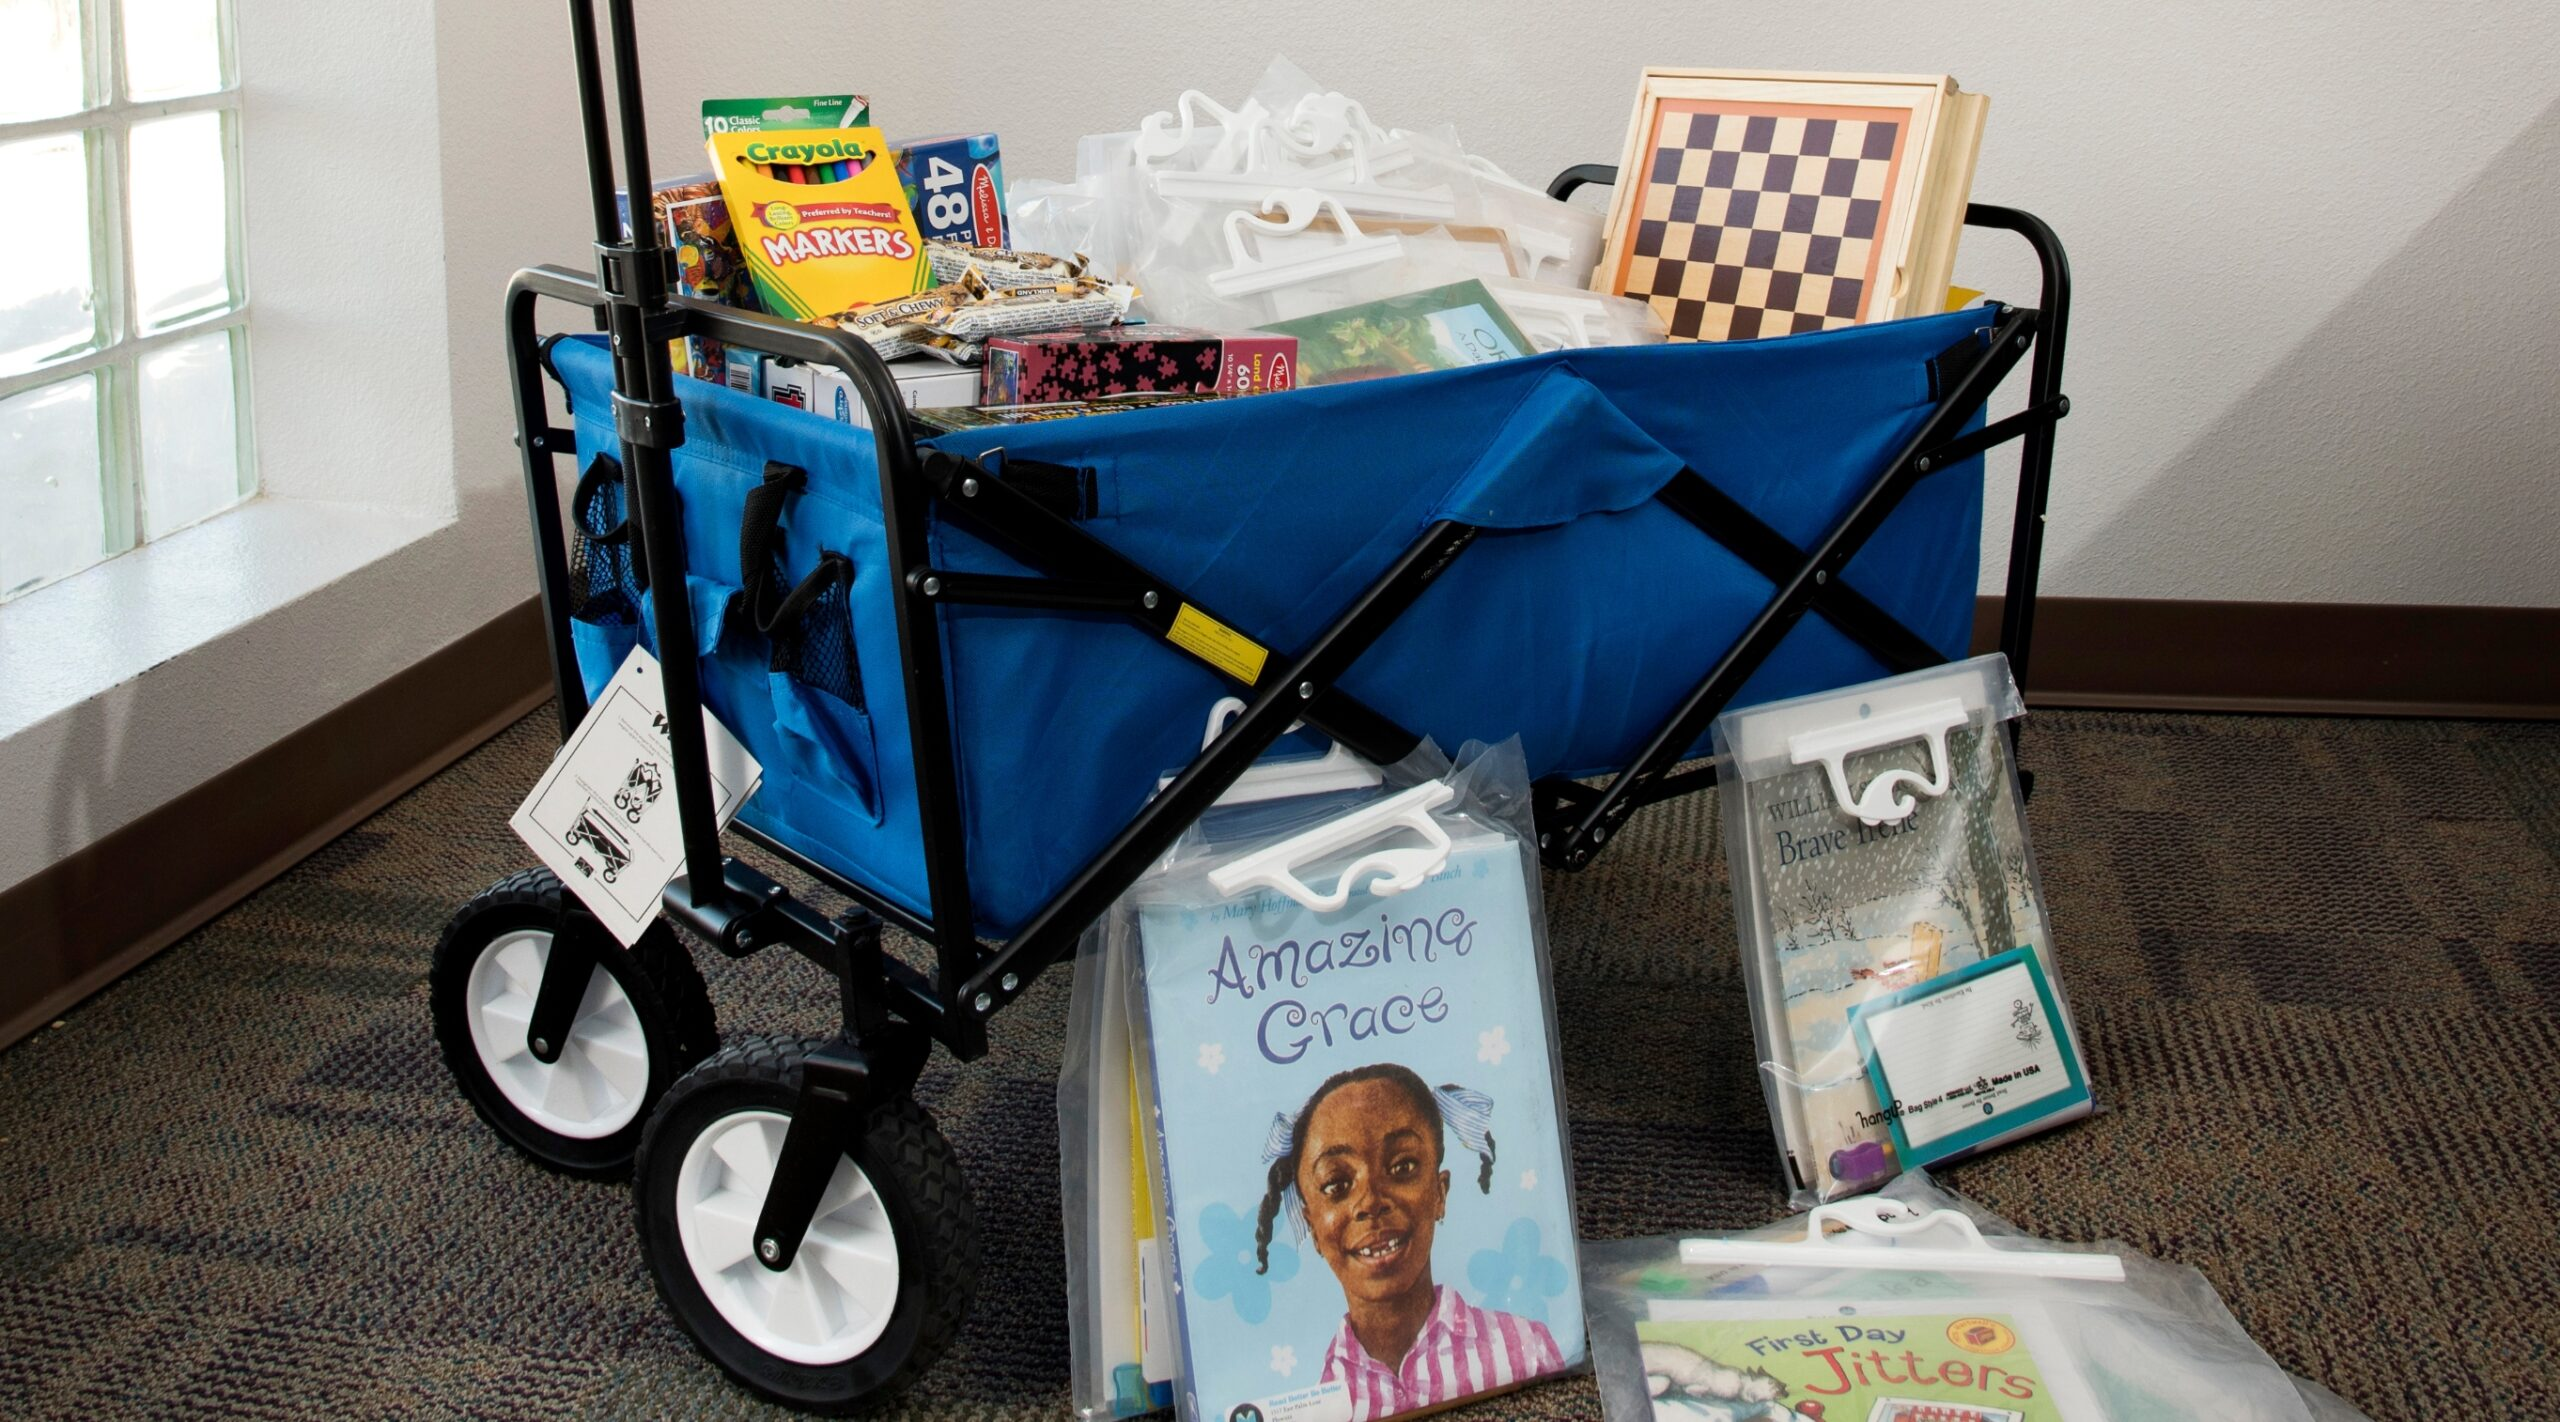 a wagon full of program materials: puzzles, games, and books